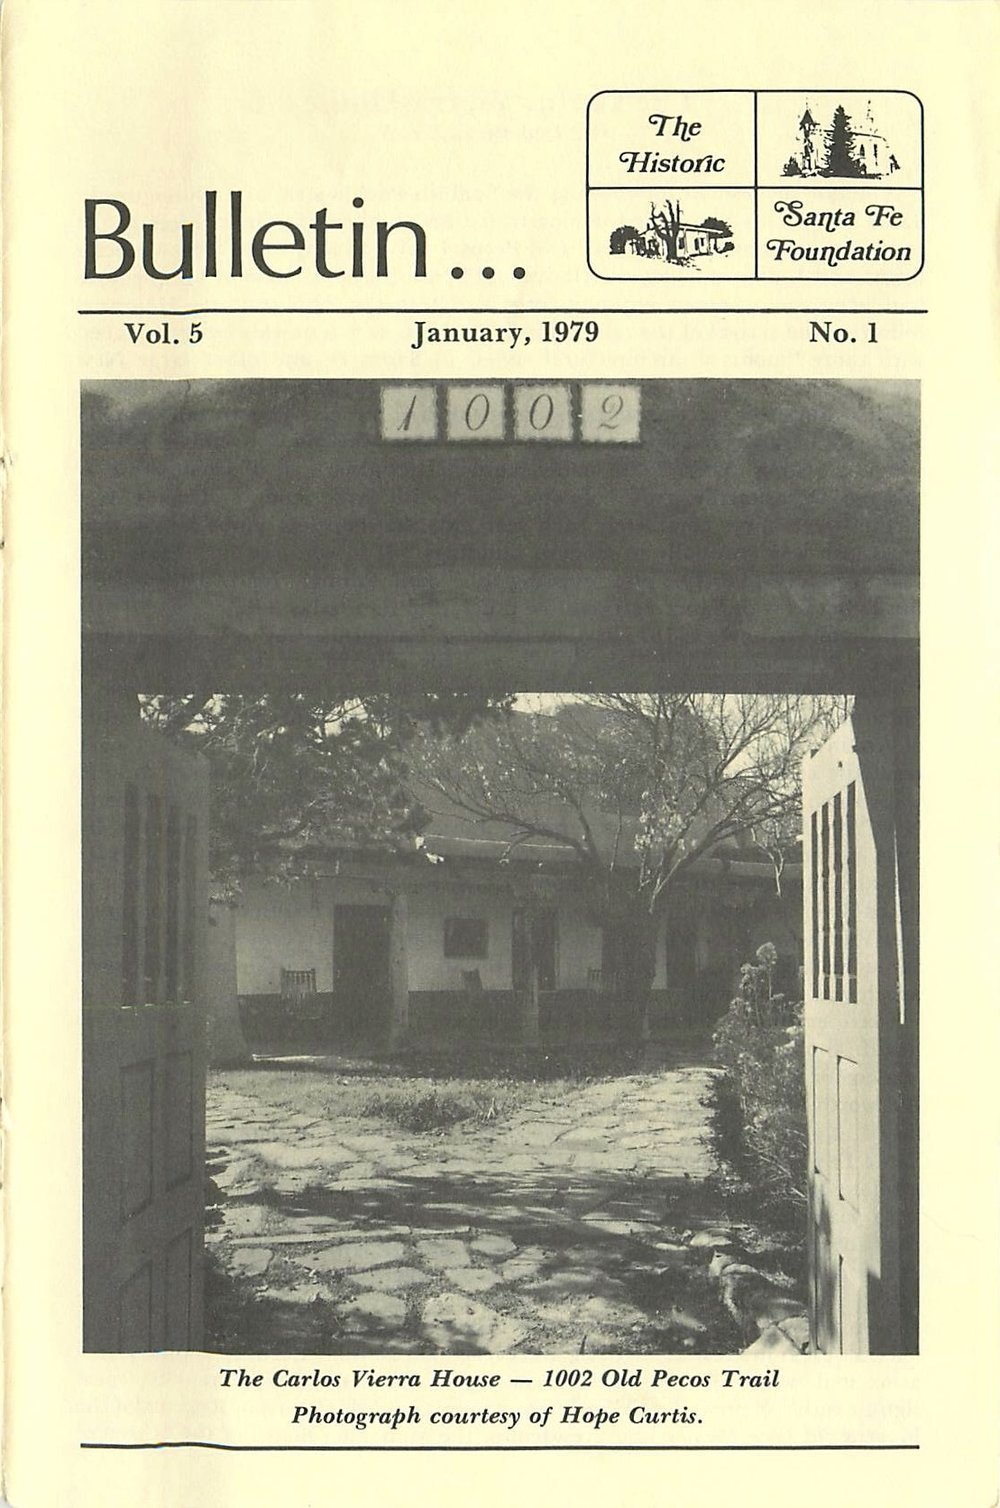 1979 HSFF Bulletin Vol.5 No.1 Cover